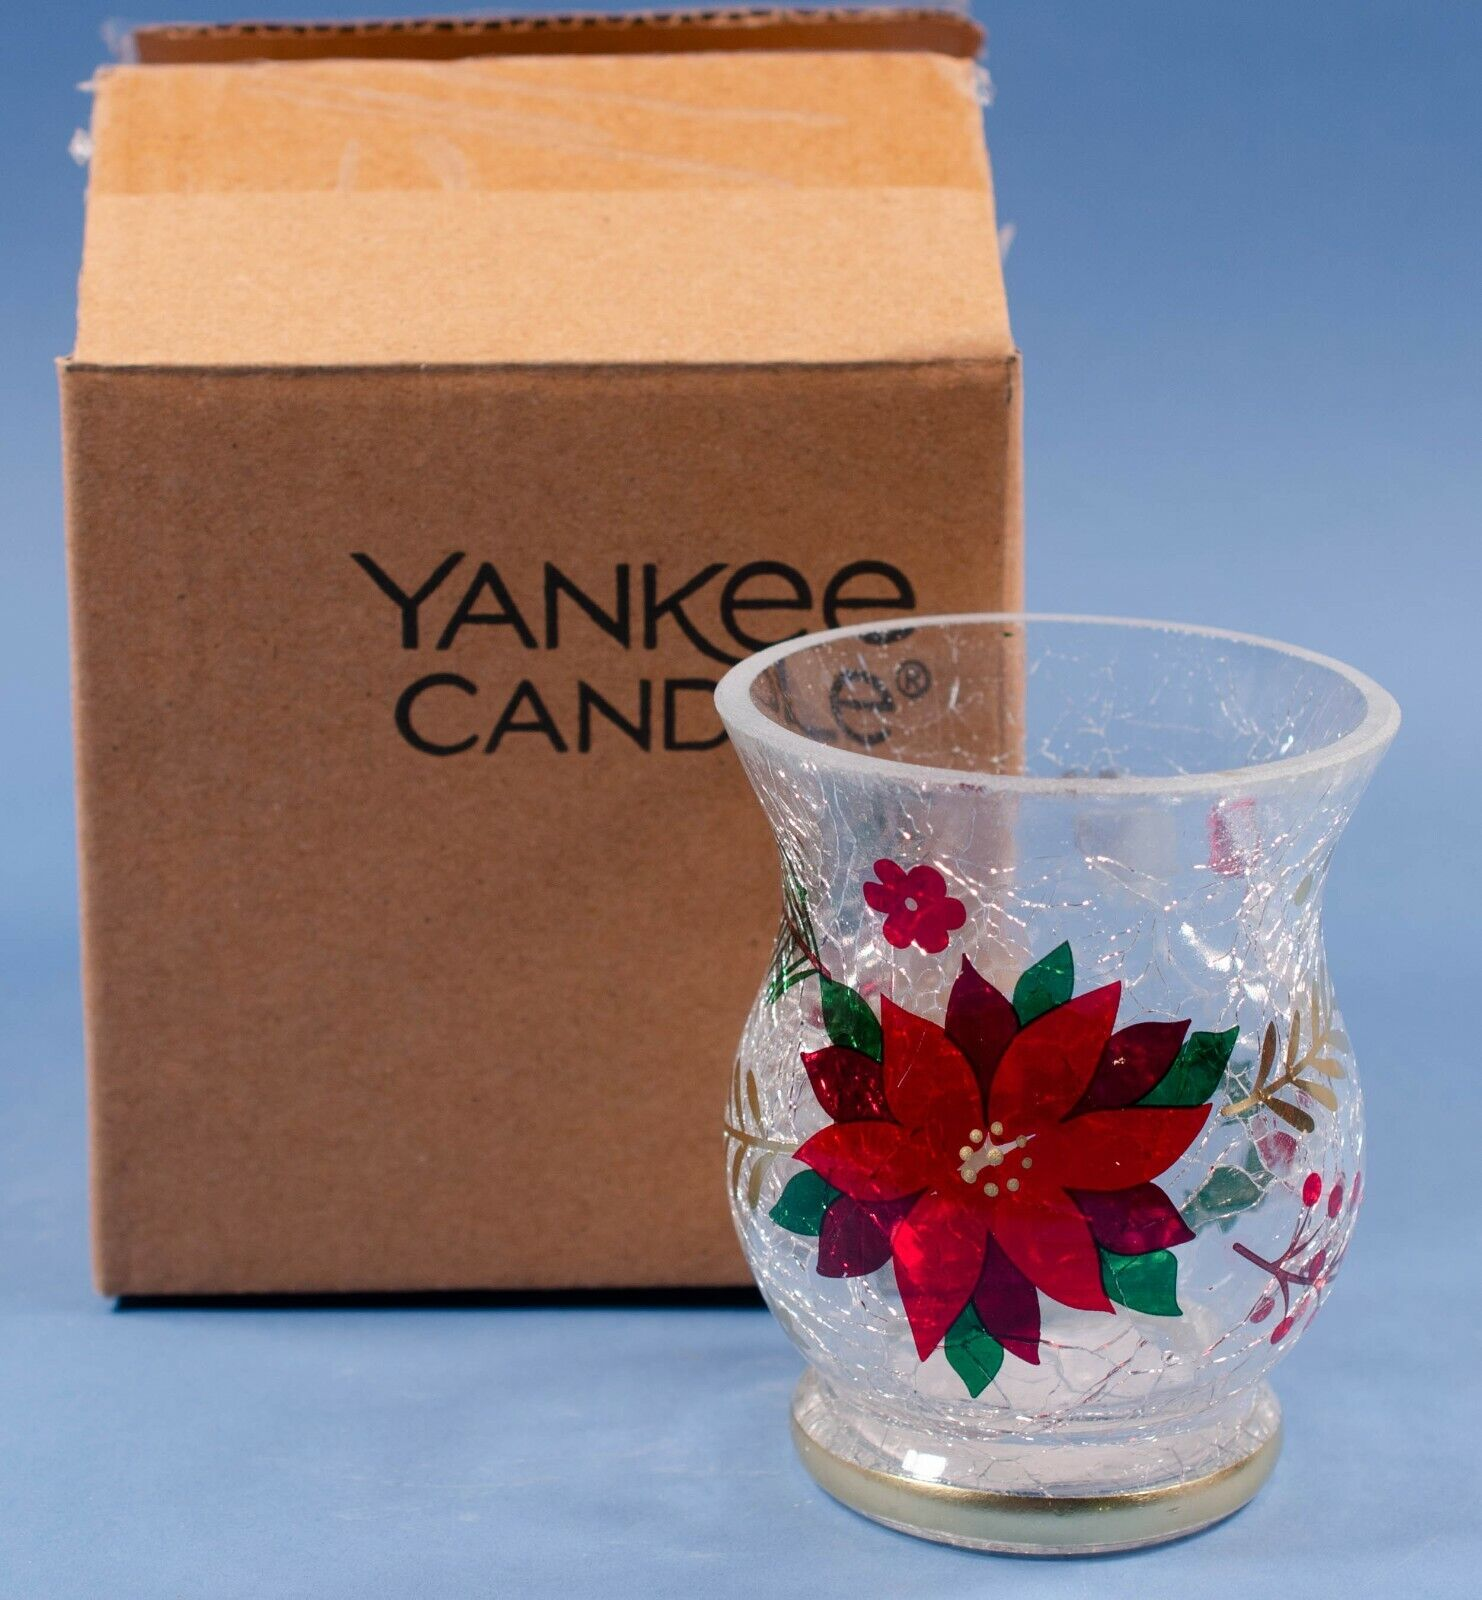 Yankee Candle Crackle Glass Poinsettia Votive Holder 1680322 NIB - $15.75